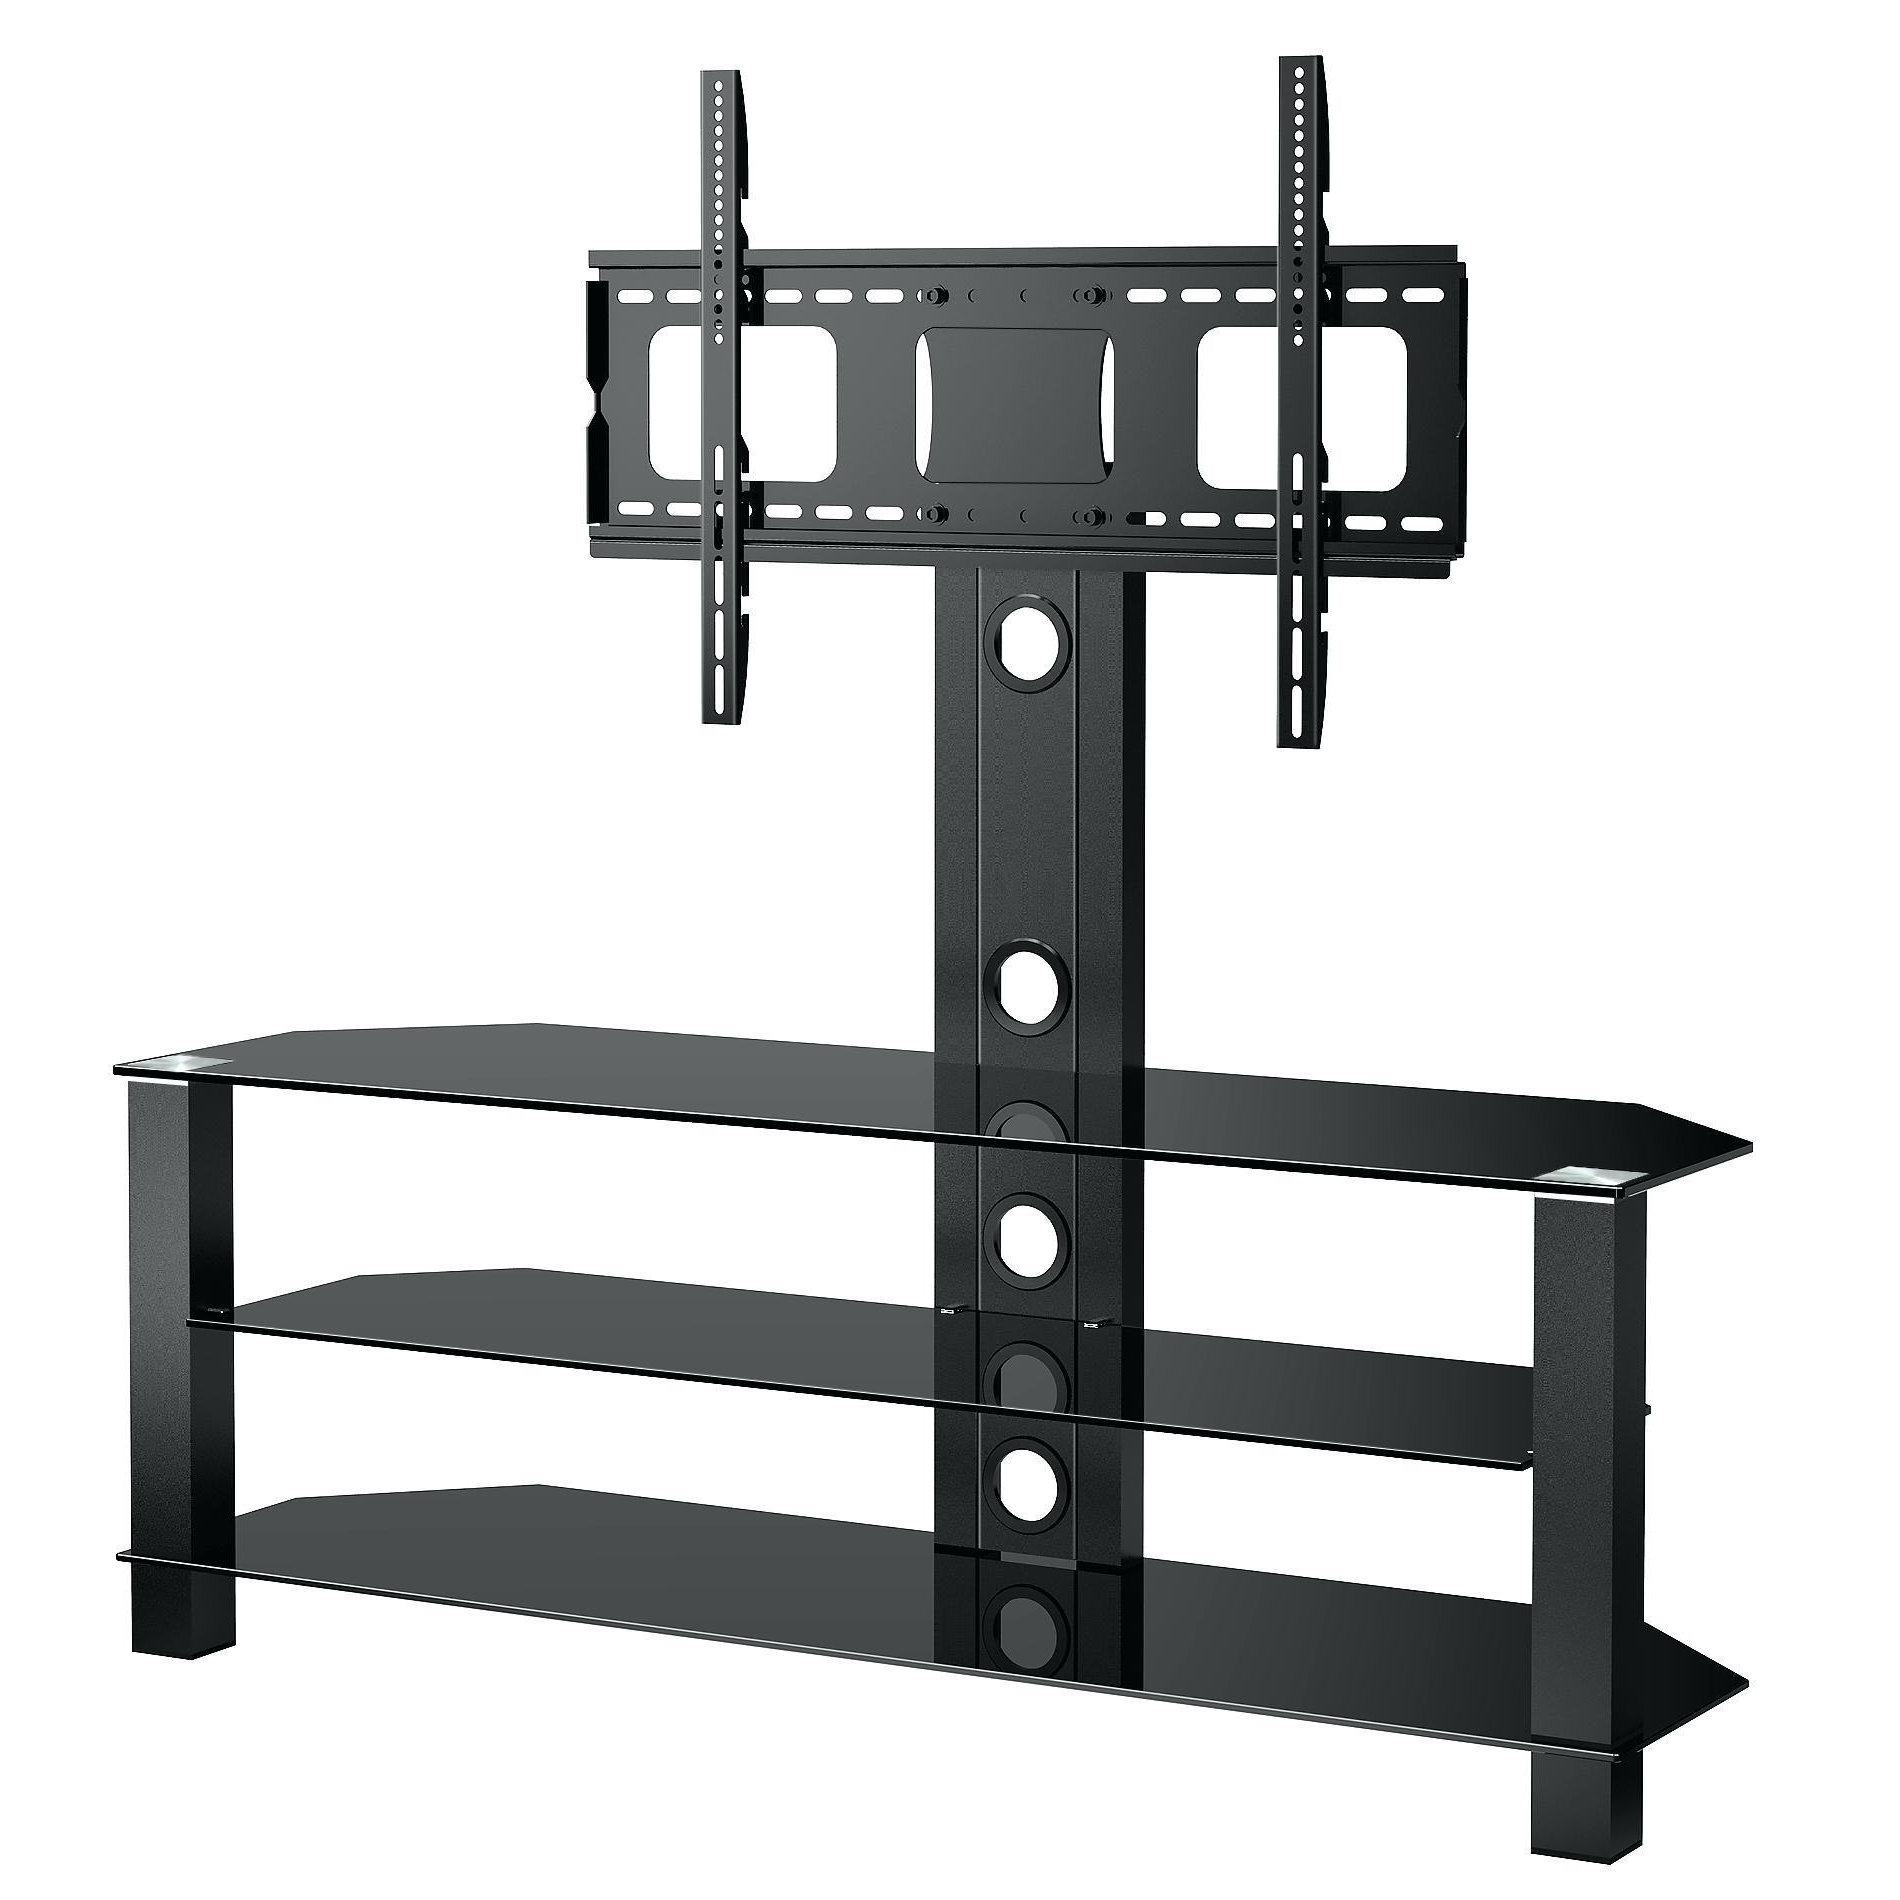 Fancy Tv Stands Throughout Preferred Inspiring Small Tv Stands Fancy Small Tv Stands For Bedroom And Tv (View 17 of 20)